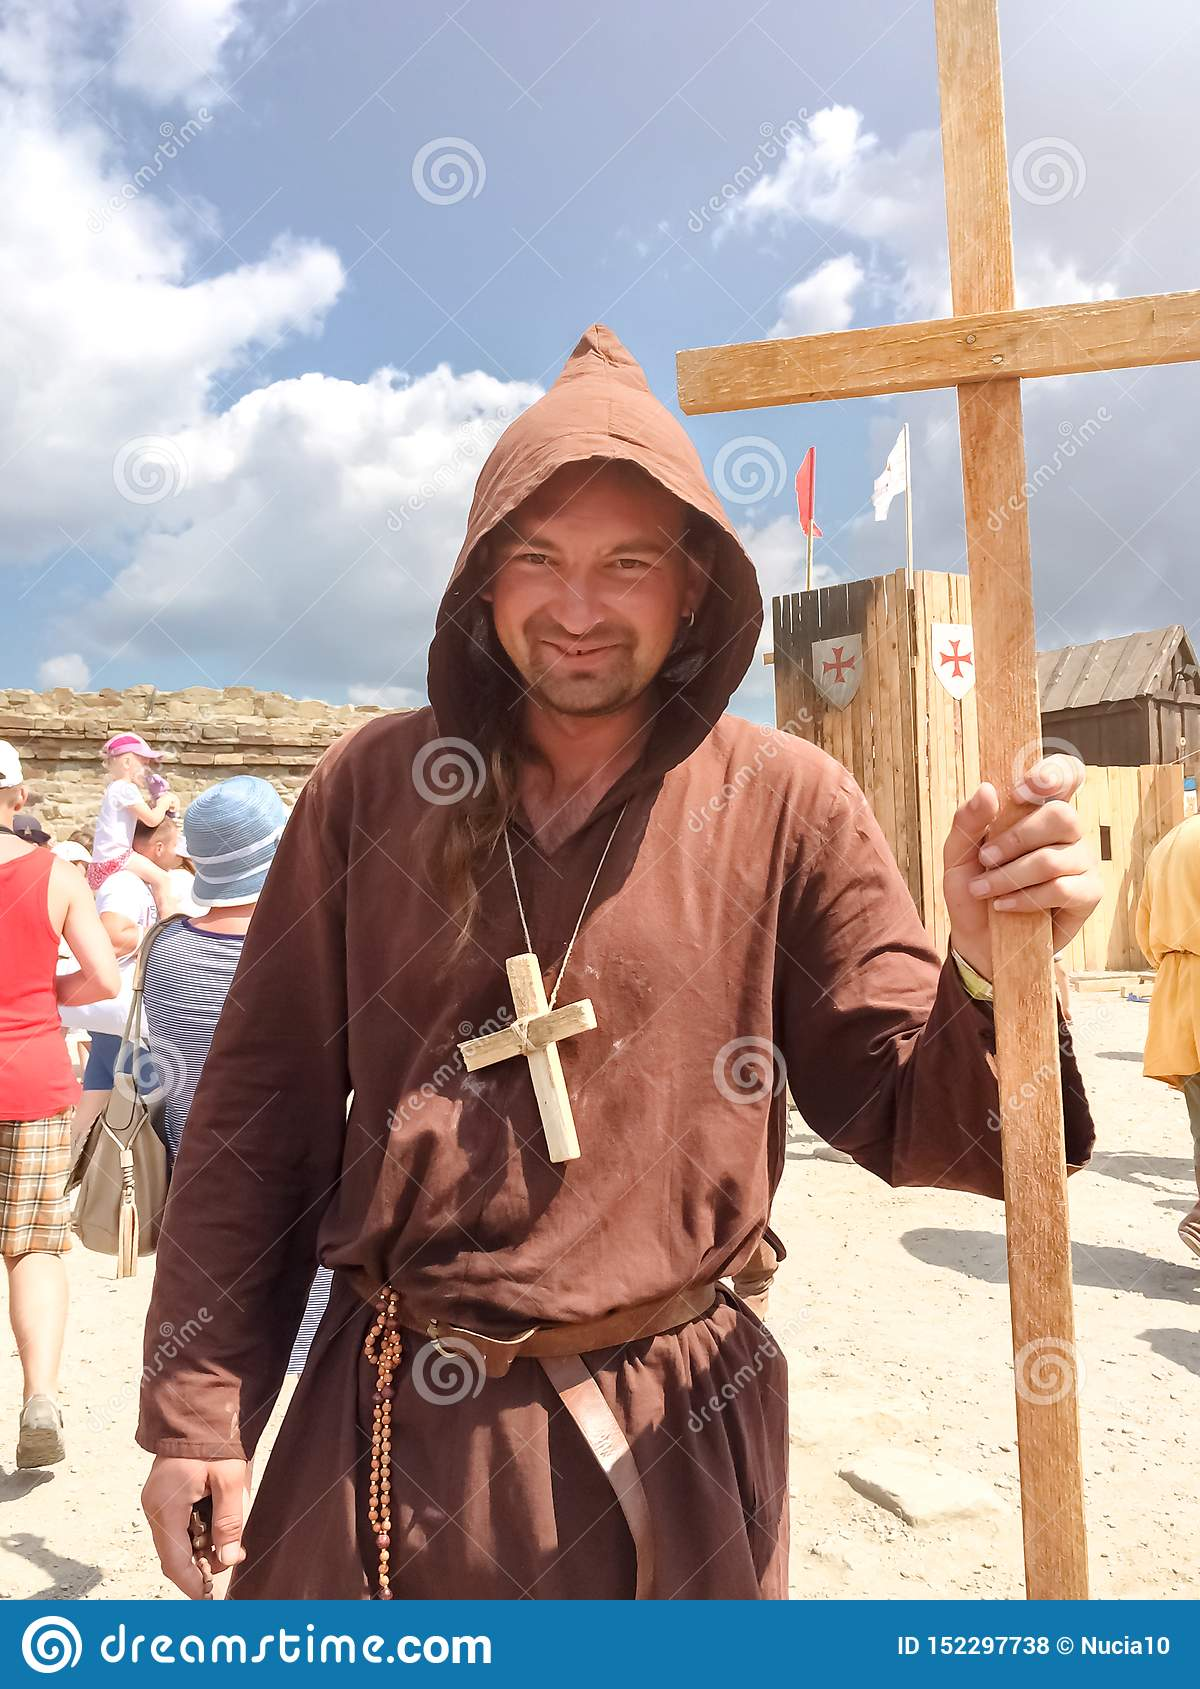 Sudak, Russia - August 16, 2015: man dressed as medieval priest, monk with a wooden cross with a staff in his hand and with a